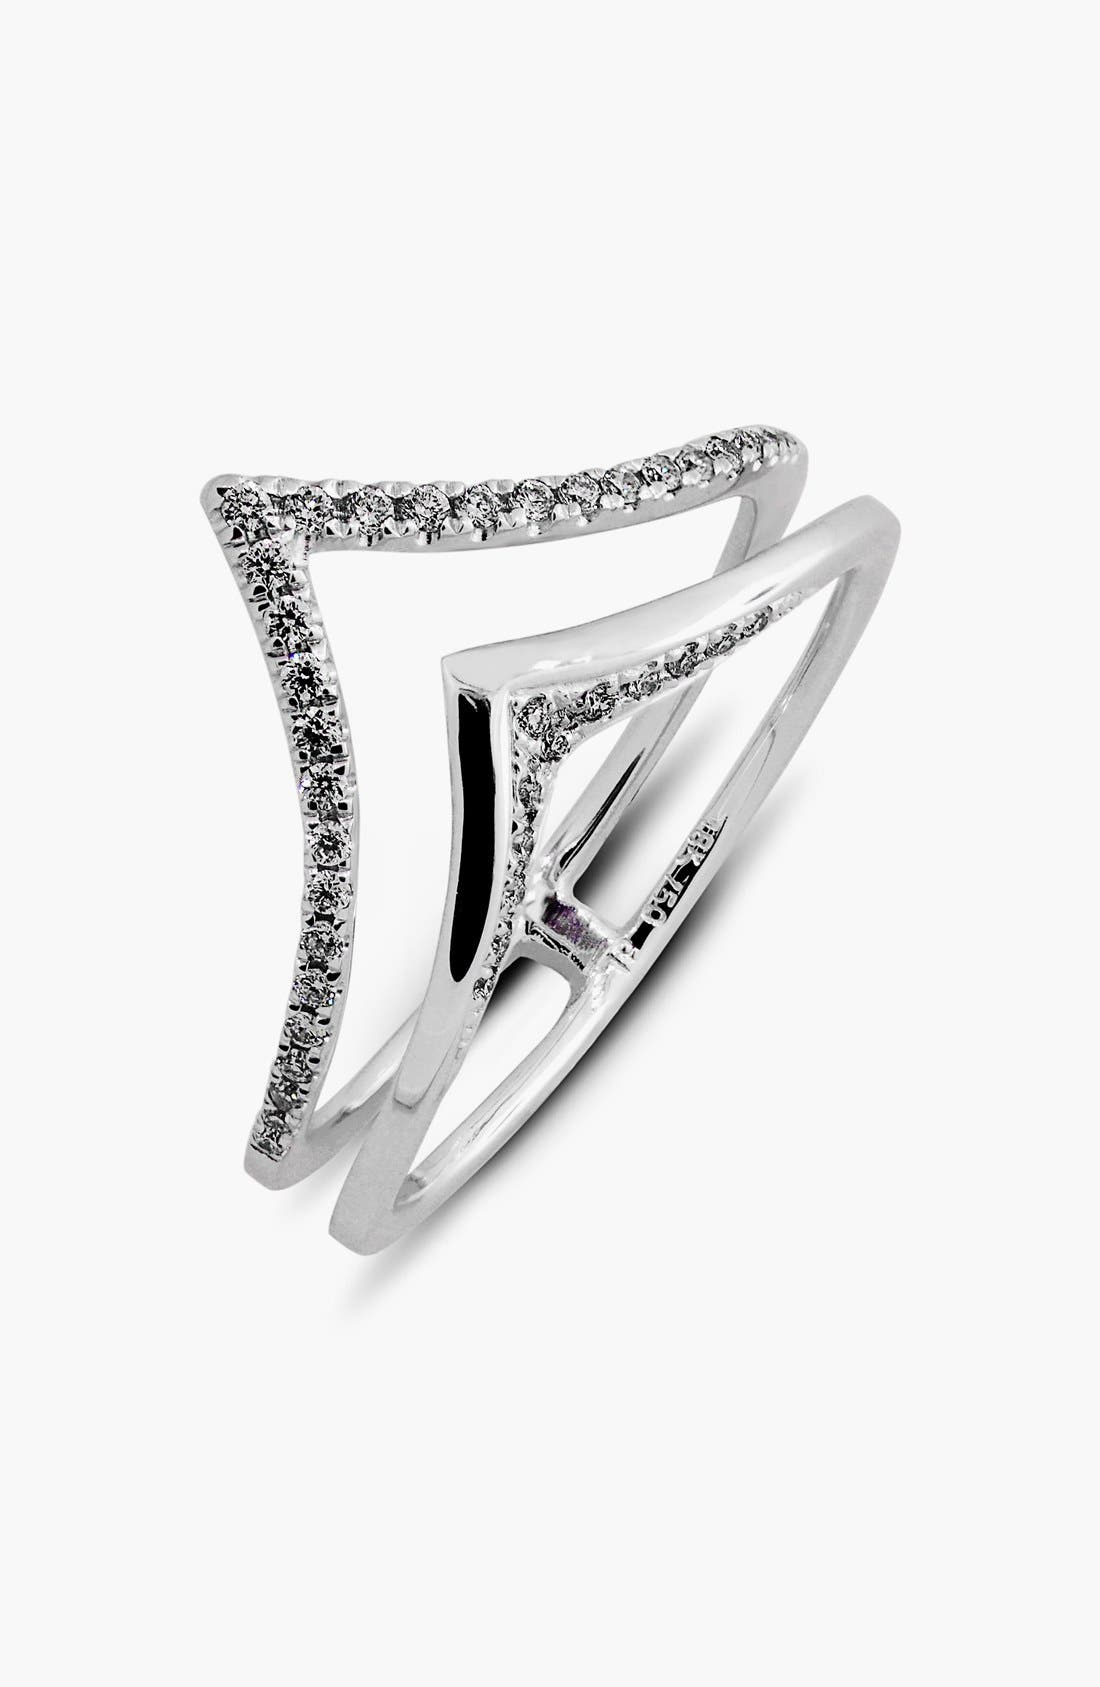 Alternate Image 1 Selected - Bony Levy Prism Chevron Diamond Ring (Limited Edition) (Nordstrom Exclusive)